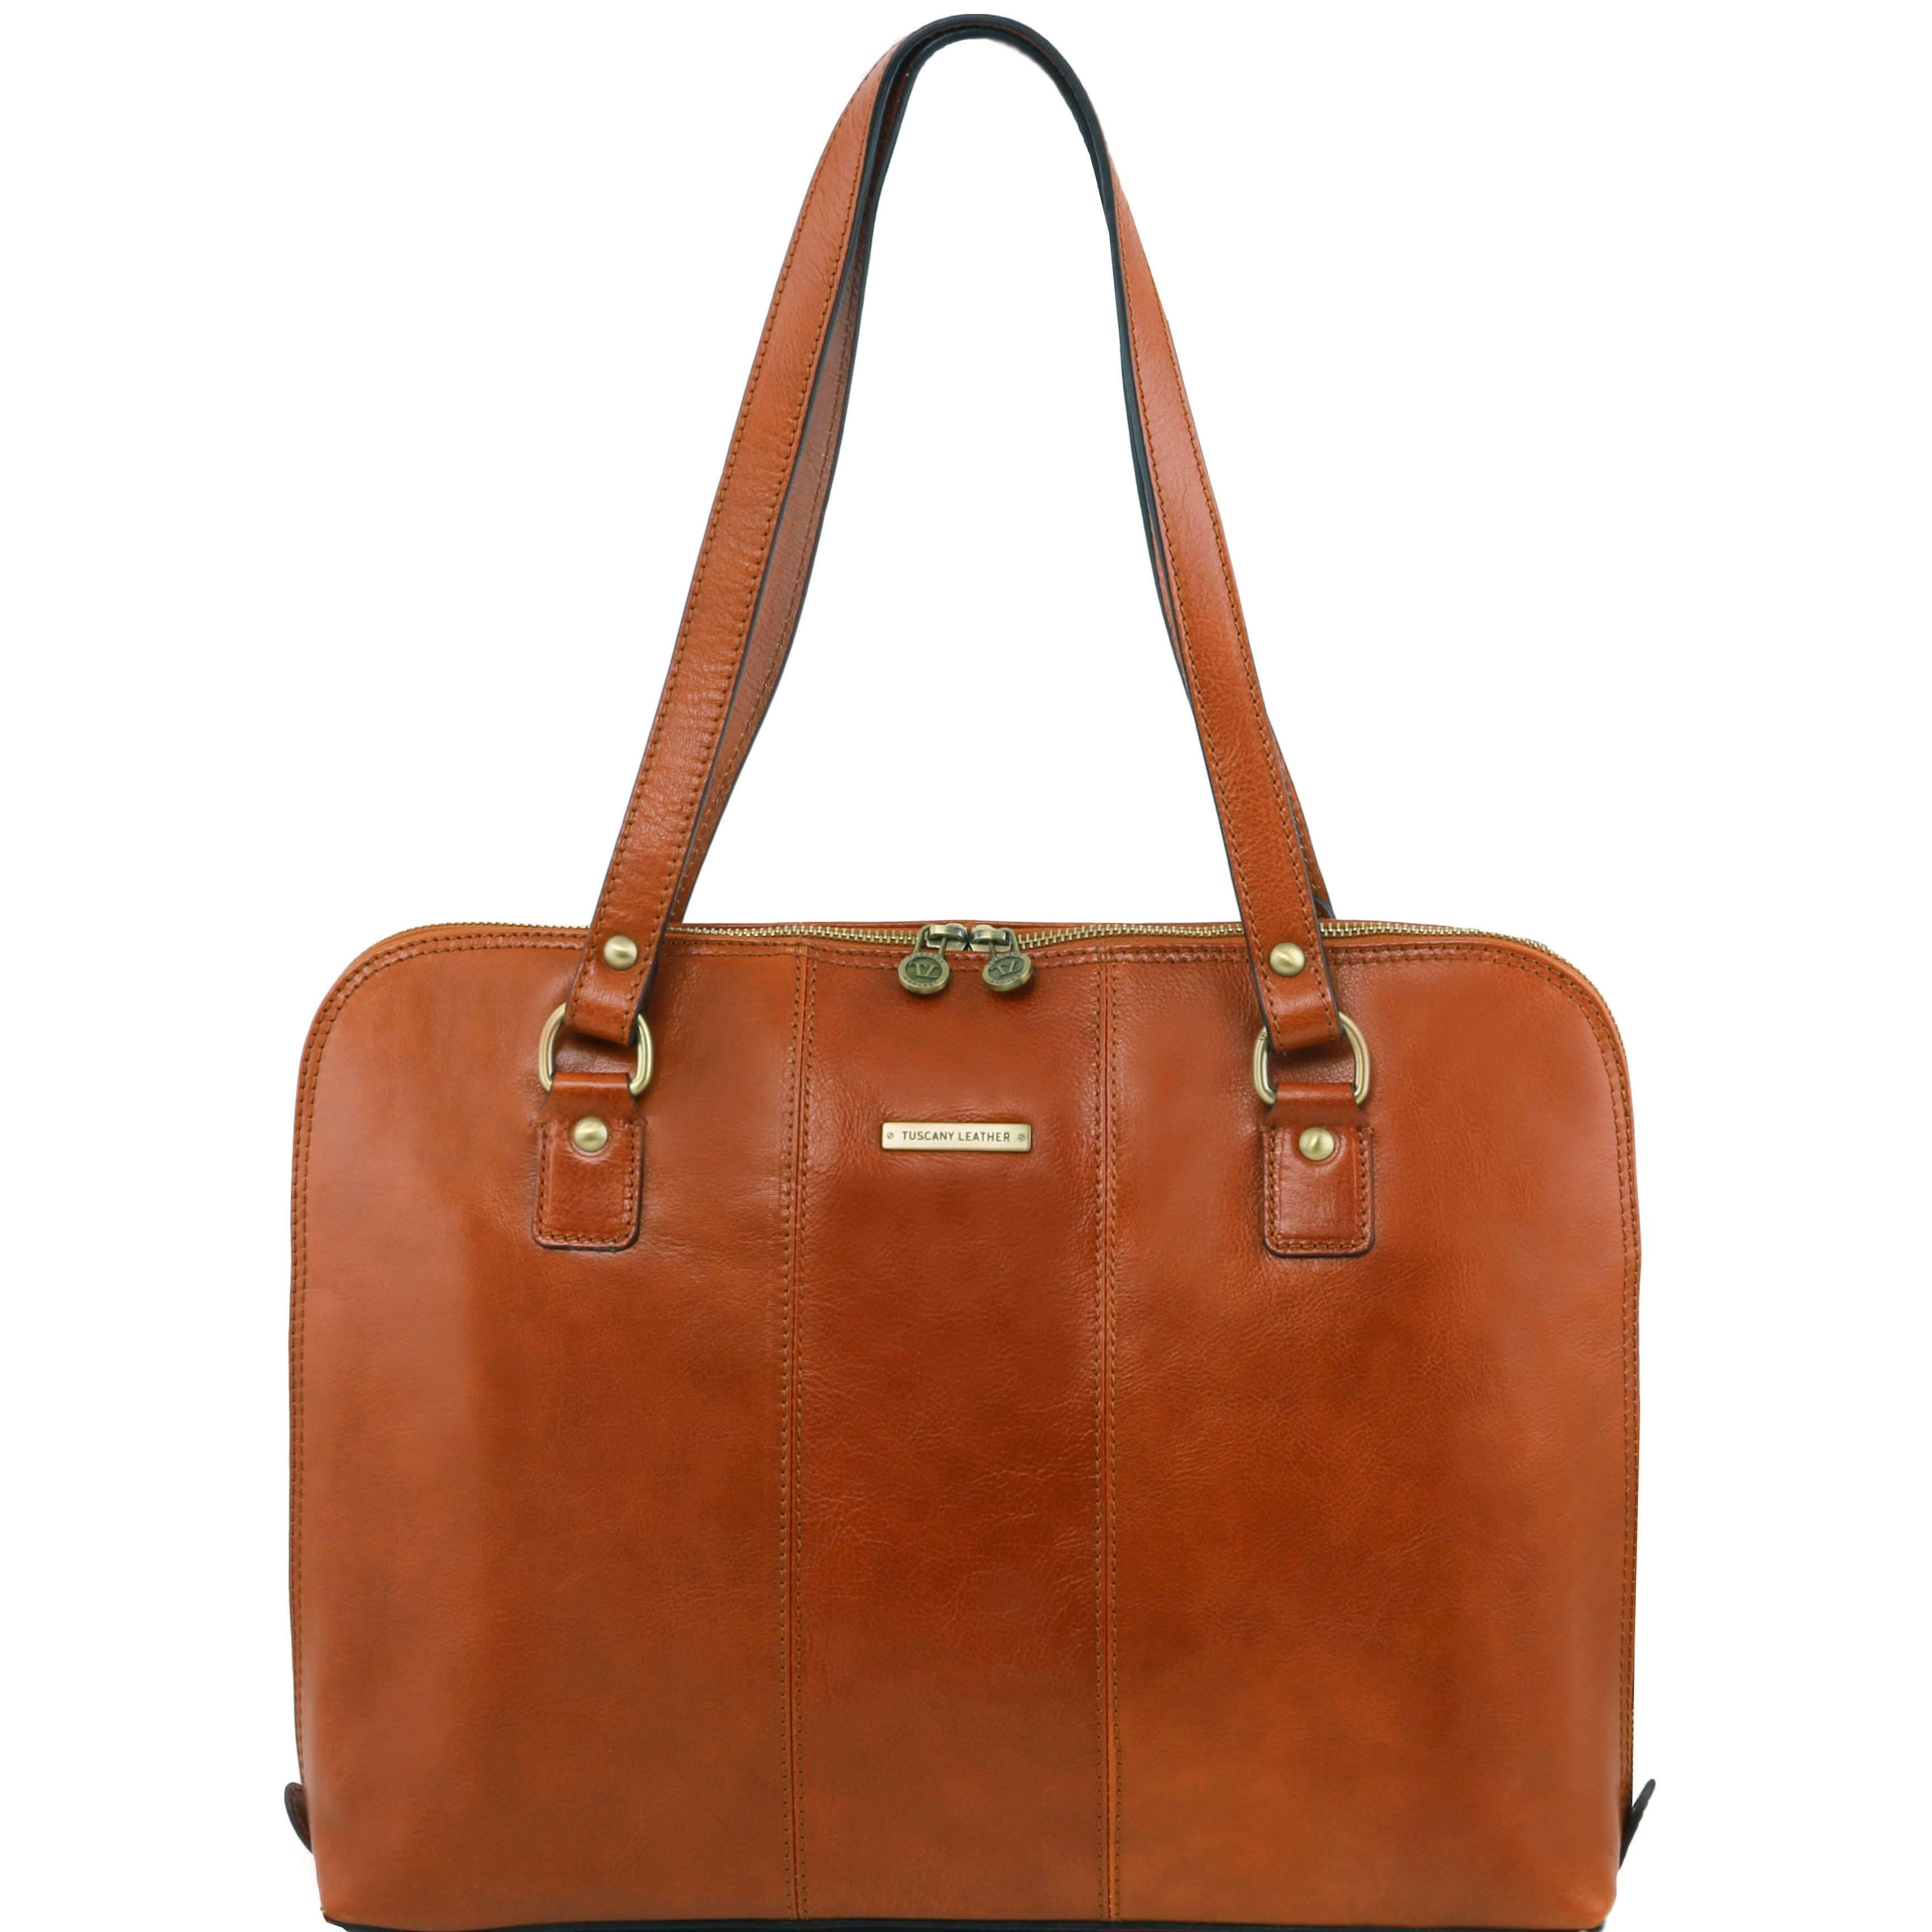 "TL141277 Ravenna Leather 15.6"" Laptop Bag-Case-Briefcase-Shoulder Bag In Honey"